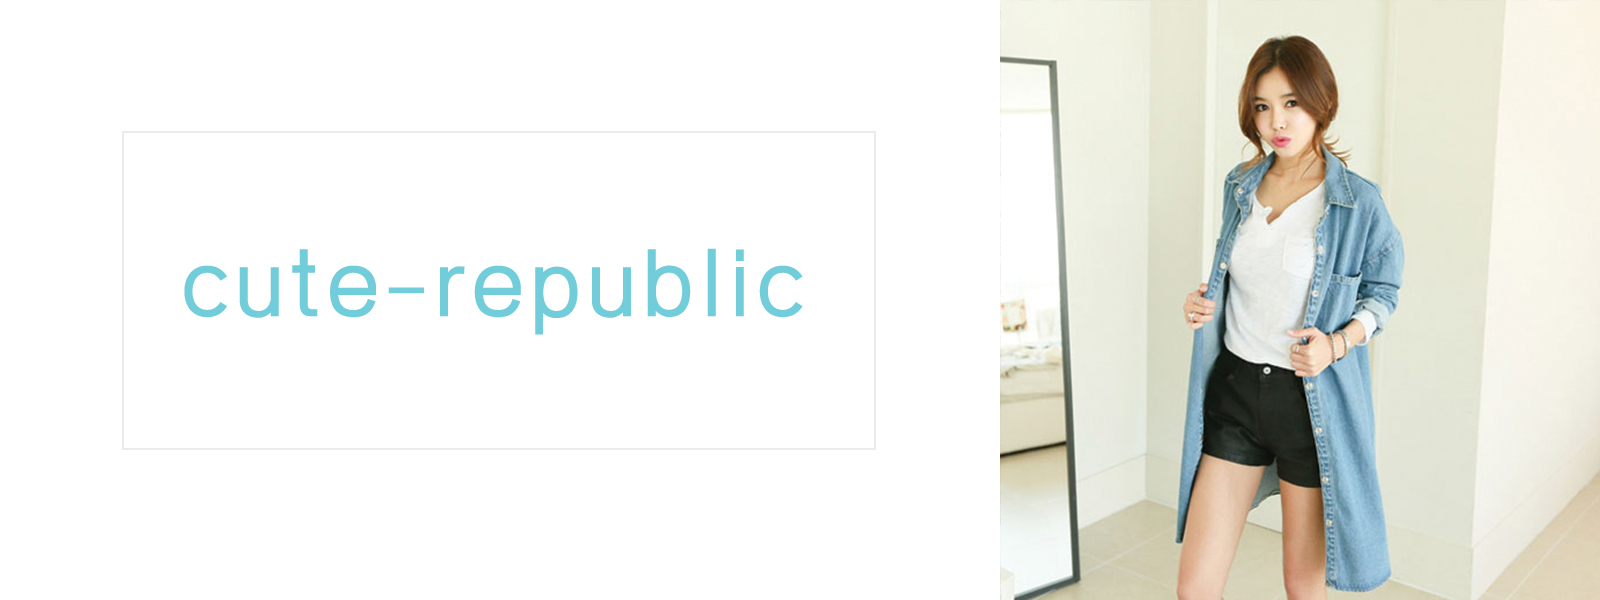 cute-republic